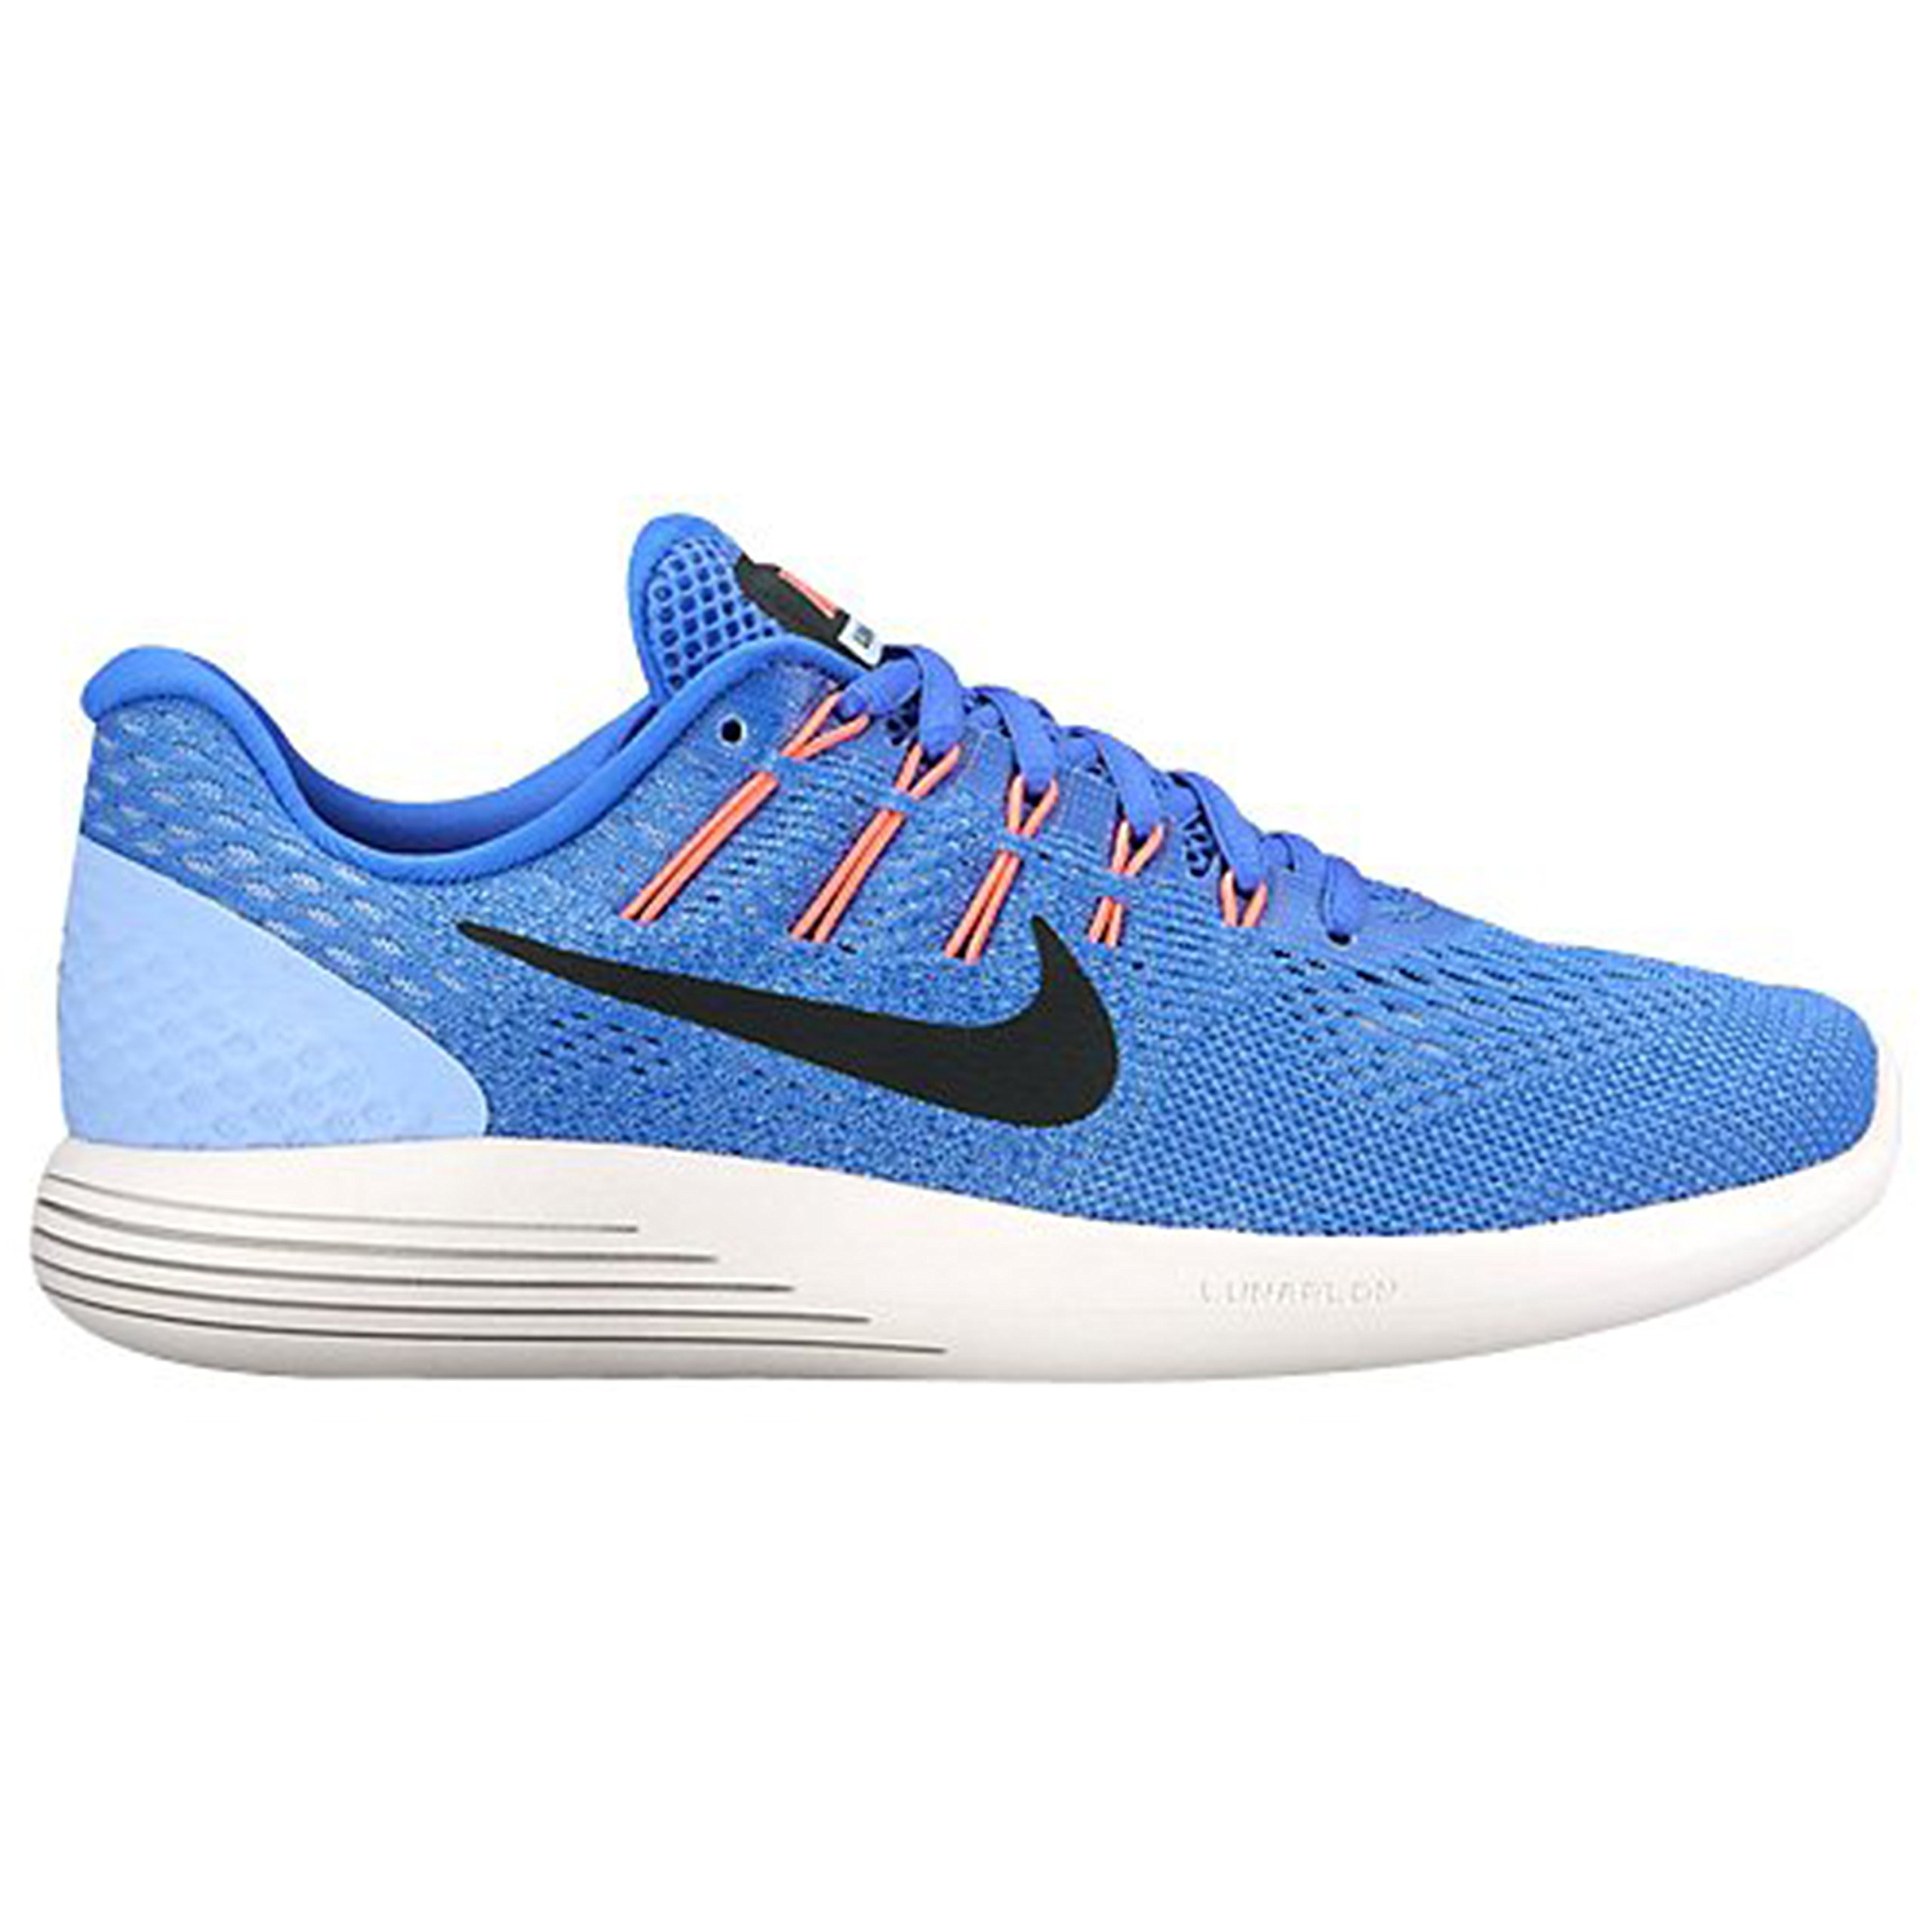 b7f75b5f77e Galleon - NIKE Women s Lunarglide 8 Running Shoe (9.5 B(M) US ...